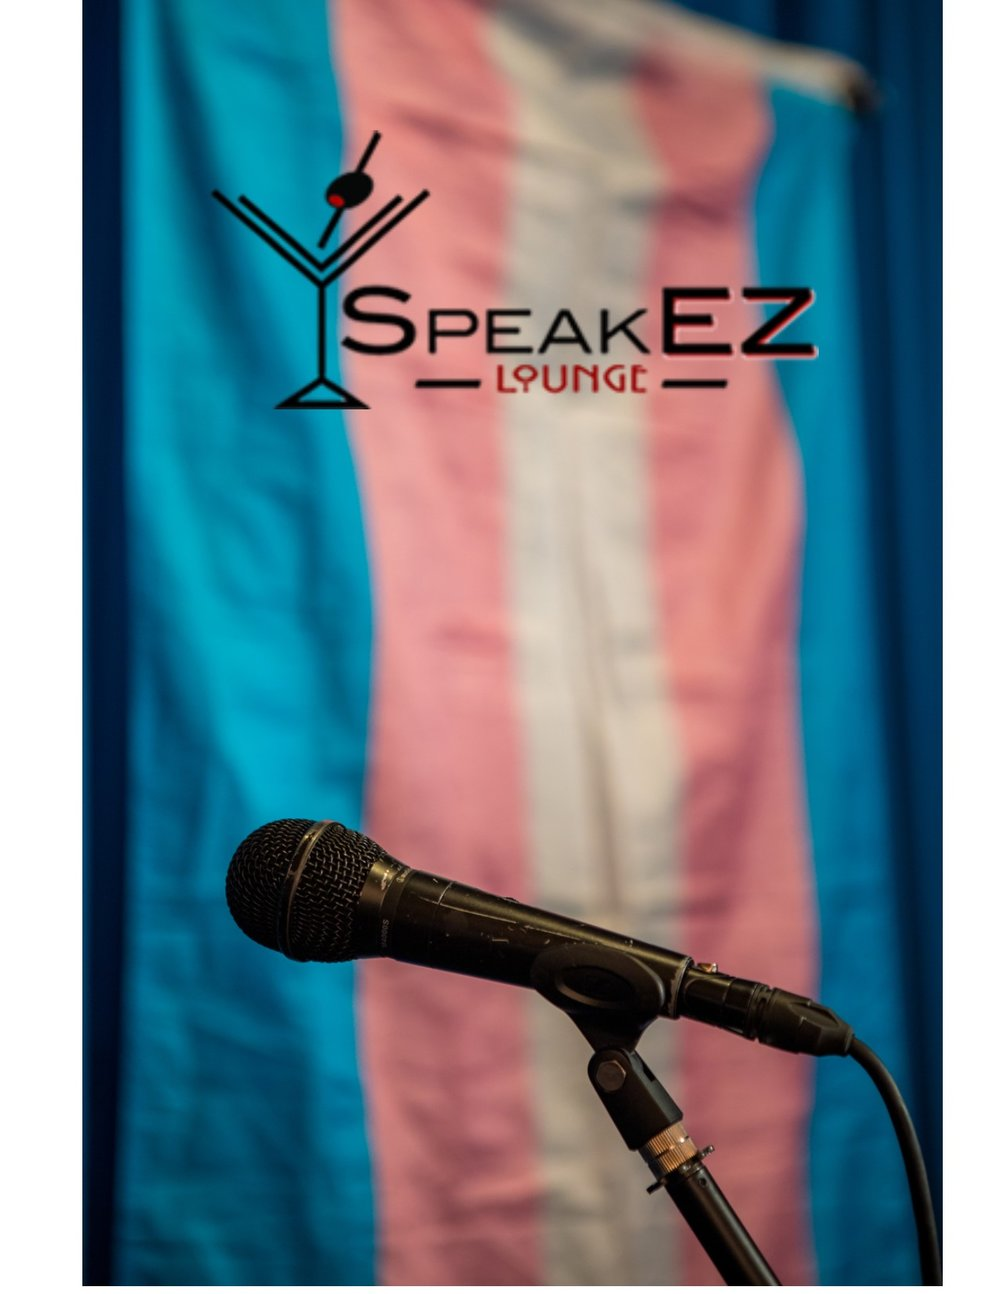 Stories Of Stealth, Activism And Positivity - Speak Ez TDOV Event 3/30/2017